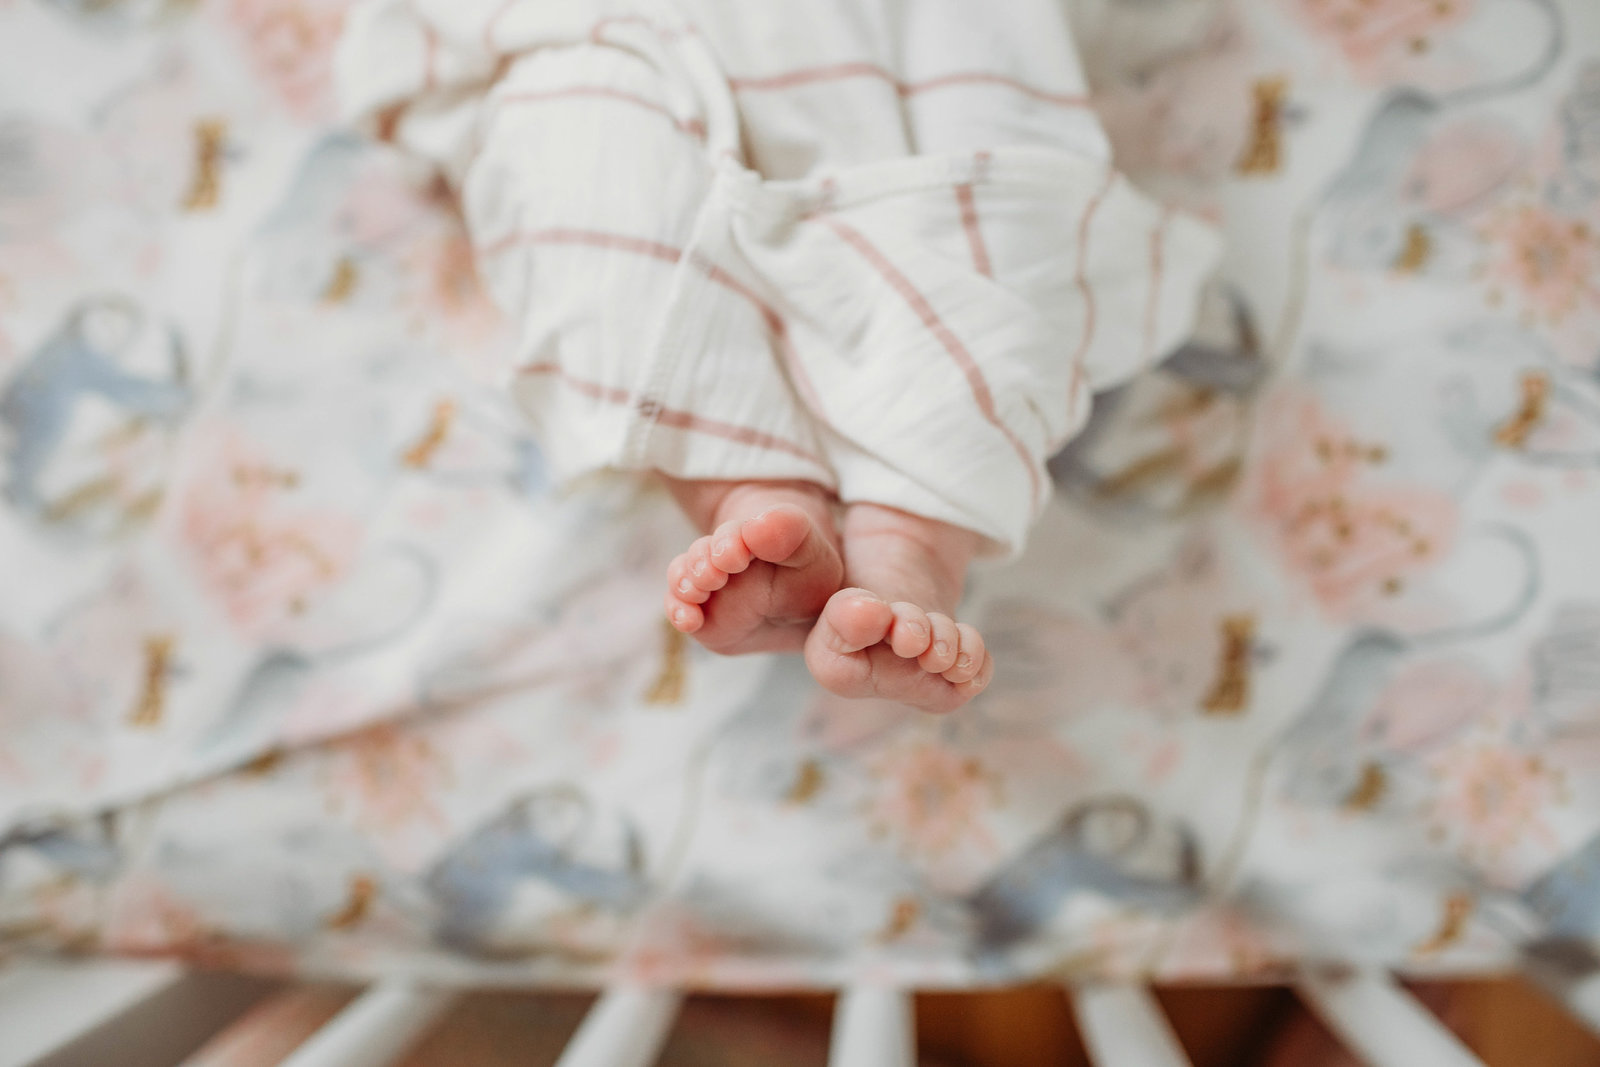 newborn toes above floral crib sheet during cohasset newborn session